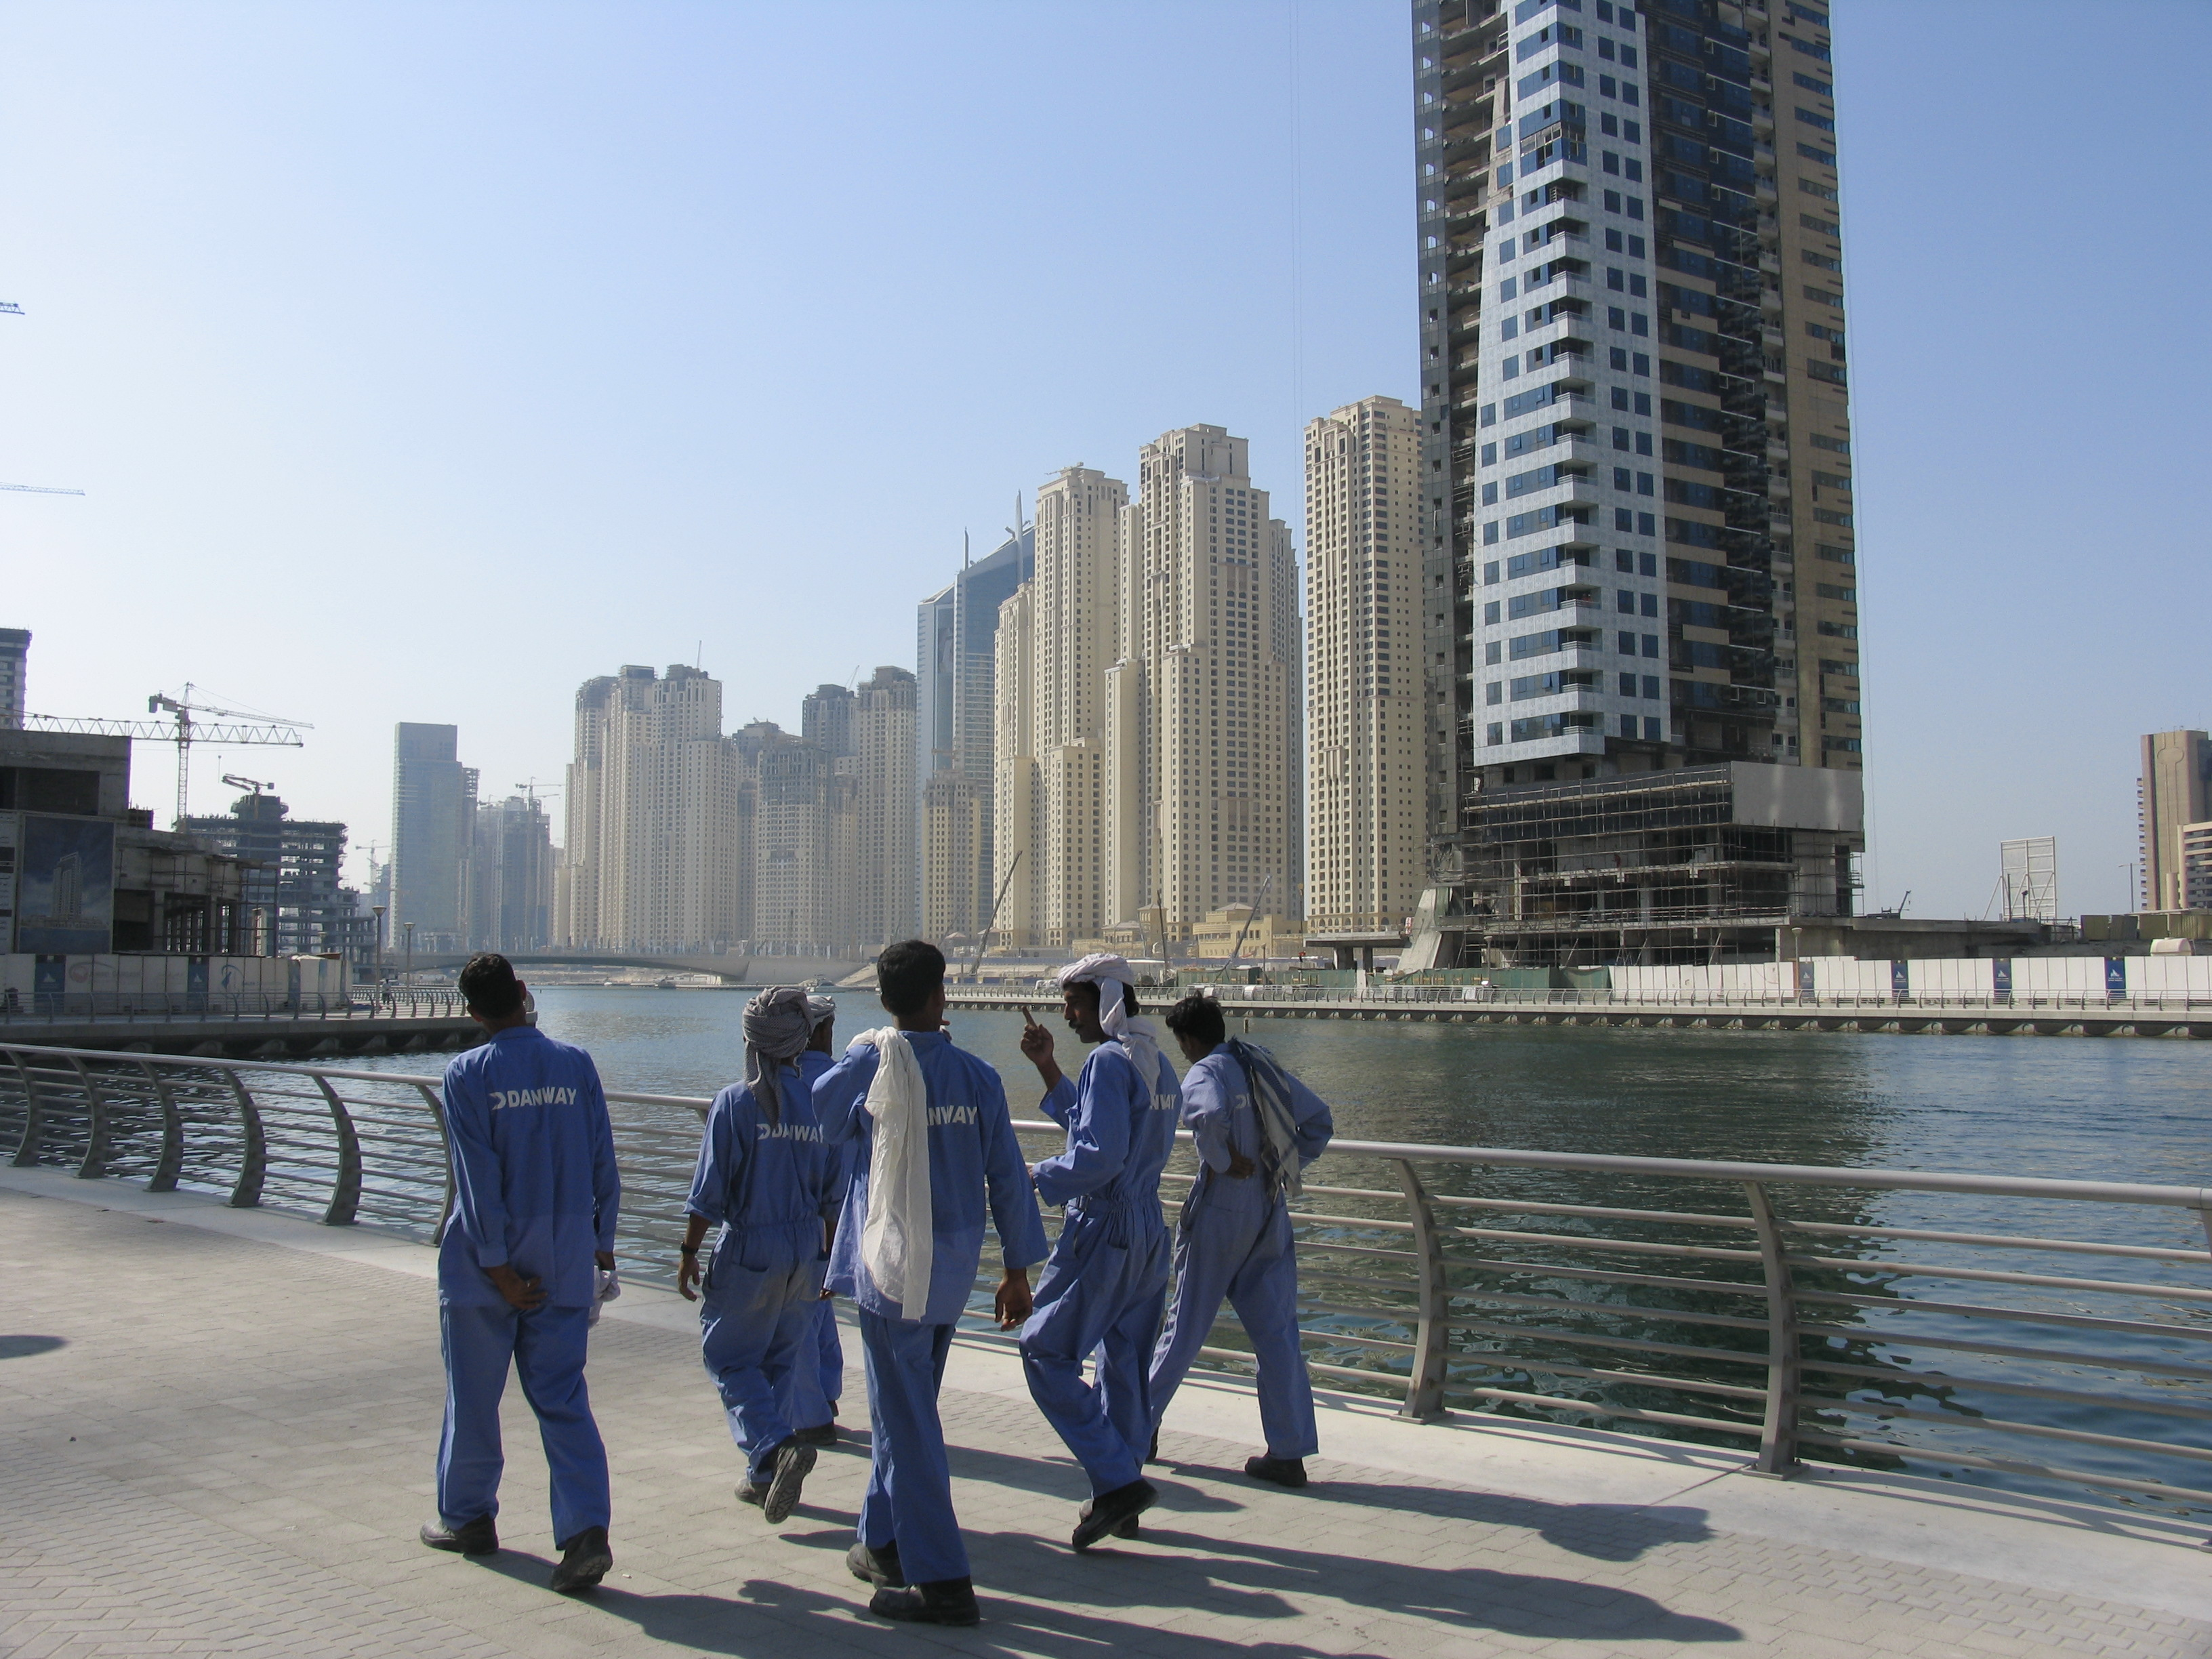 Migrant construction workers in Dubai (Source: Wikimedia Commons)